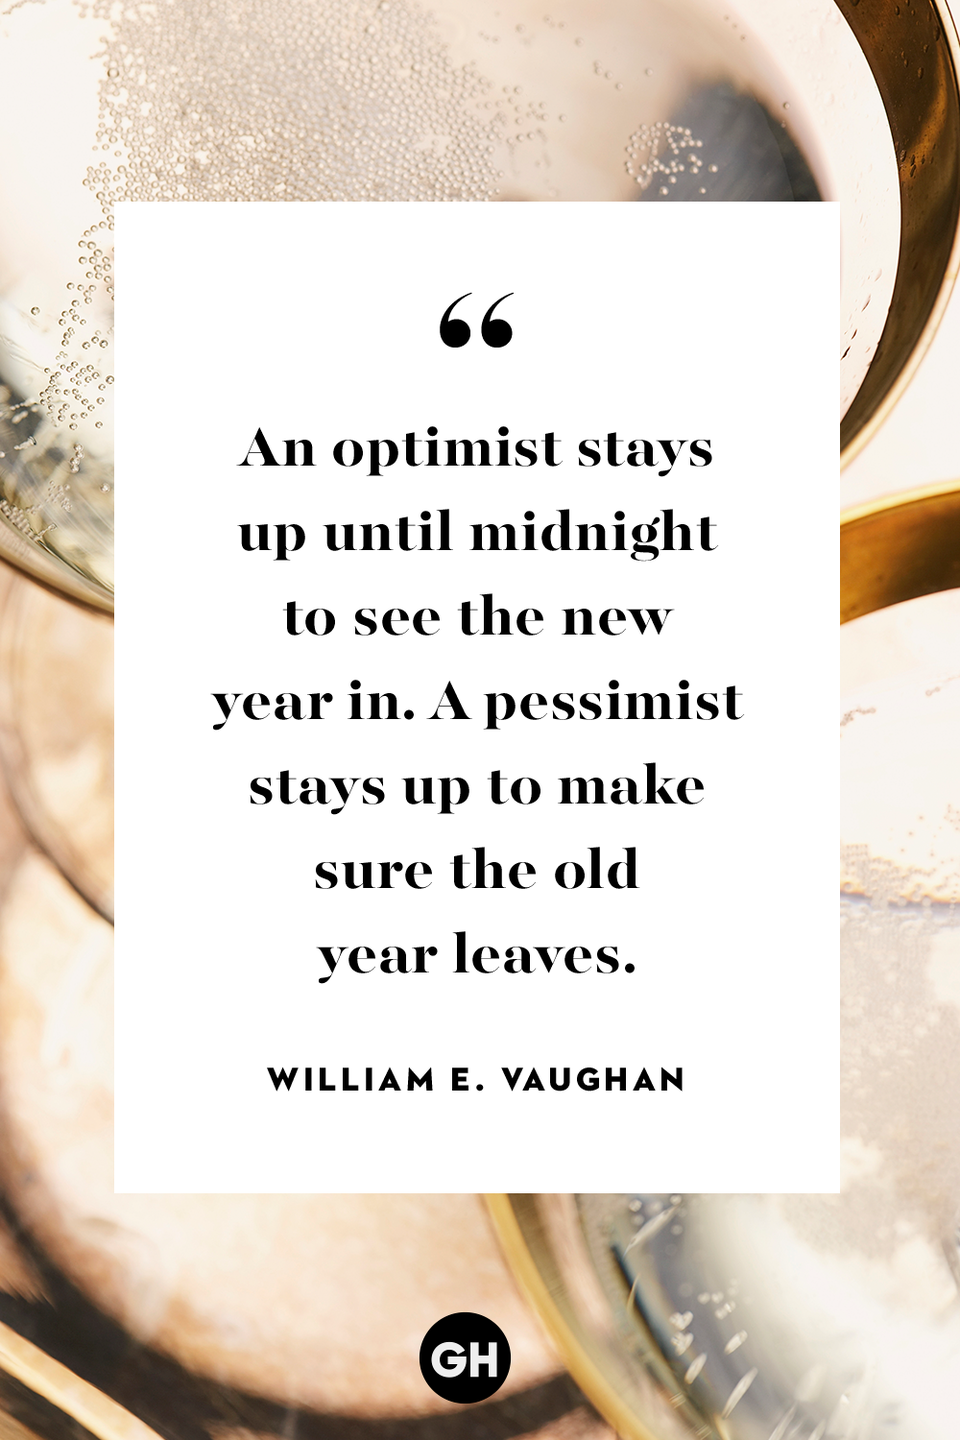 <p>An optimist stays up until midnight to see the new year in. A pessimist stays up to make sure the old year leaves.</p>